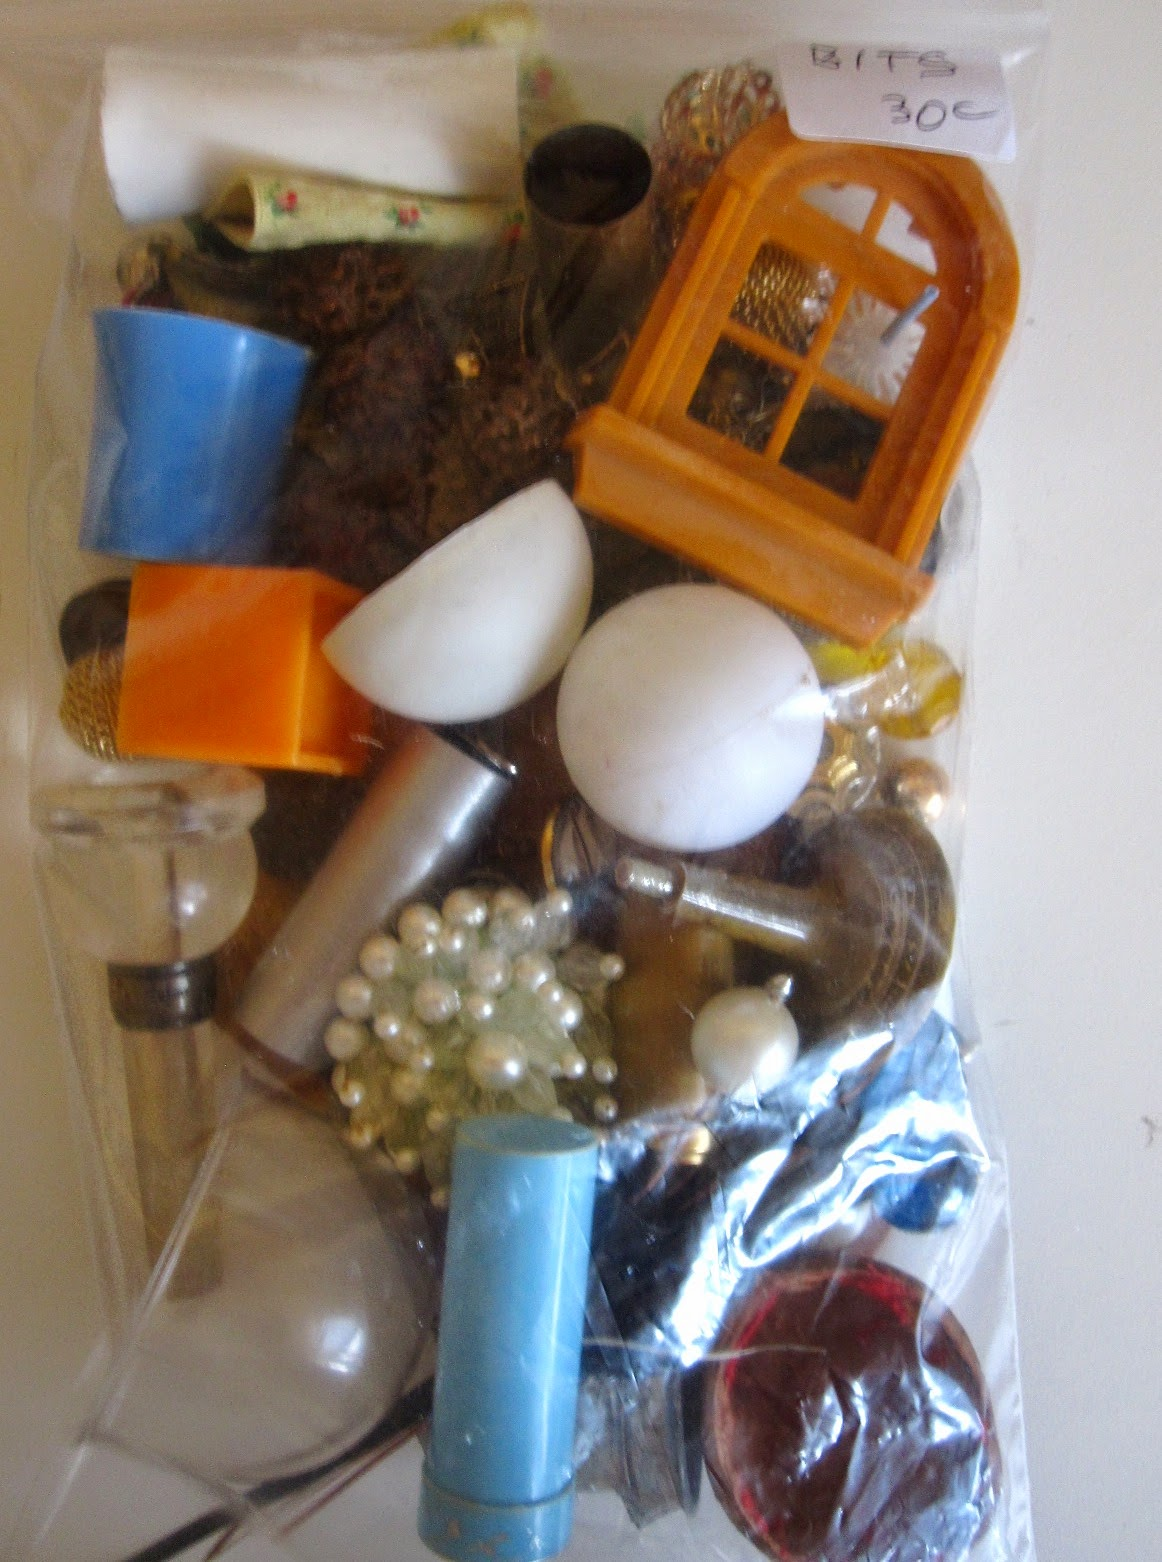 A5-sized bag of bits and bobs for miniature use. Bag is marked 'Bits 30c' and contains a variety of vintage earrings, containers and jewellery pieces.